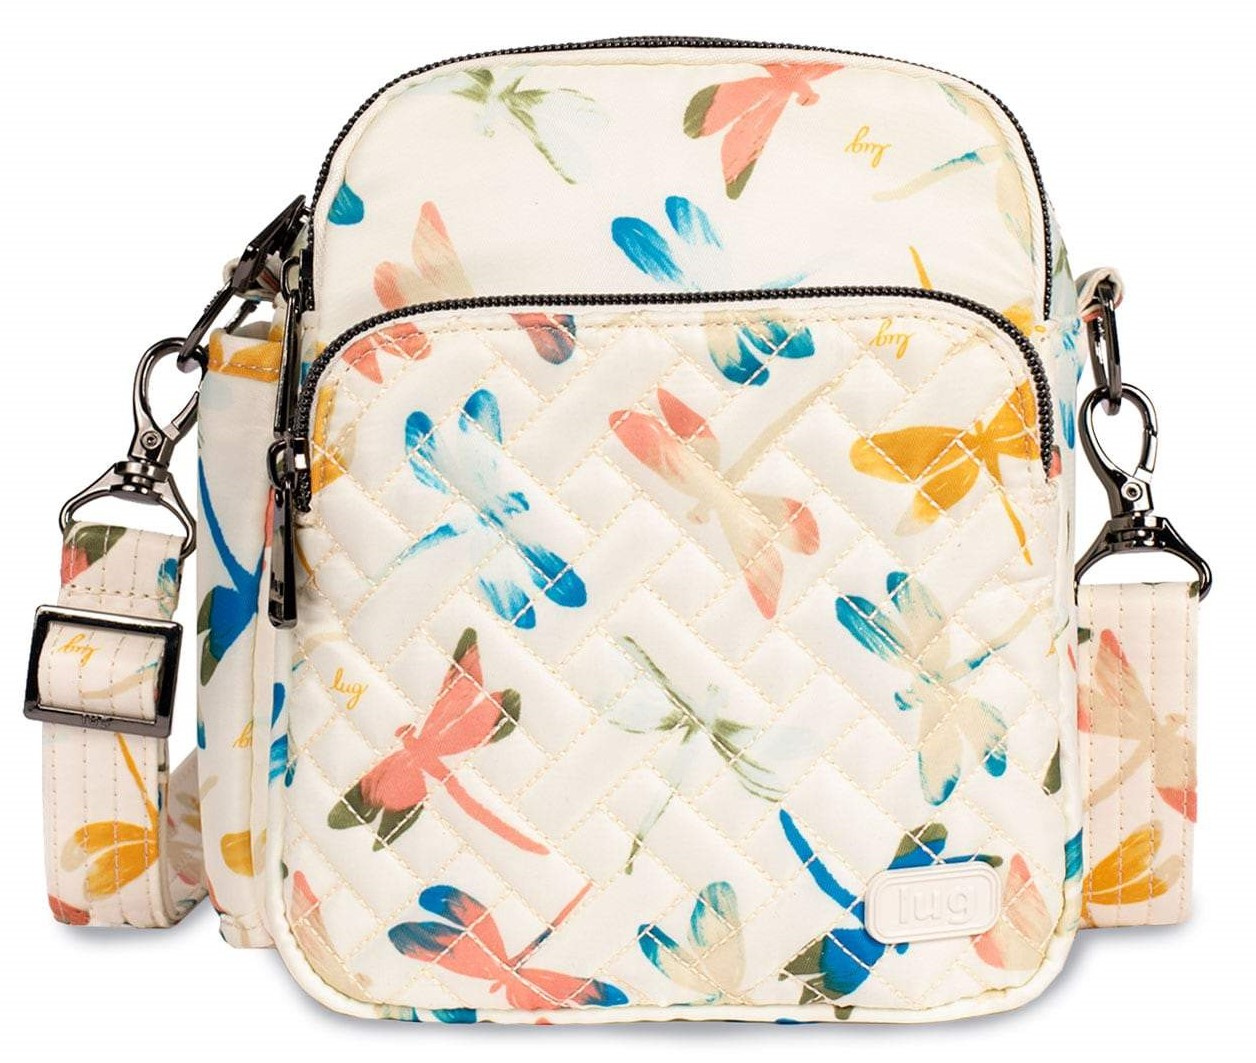 LUG - Can Can 2 - Convertible Crossbody/Belt Bag - Dragonfly